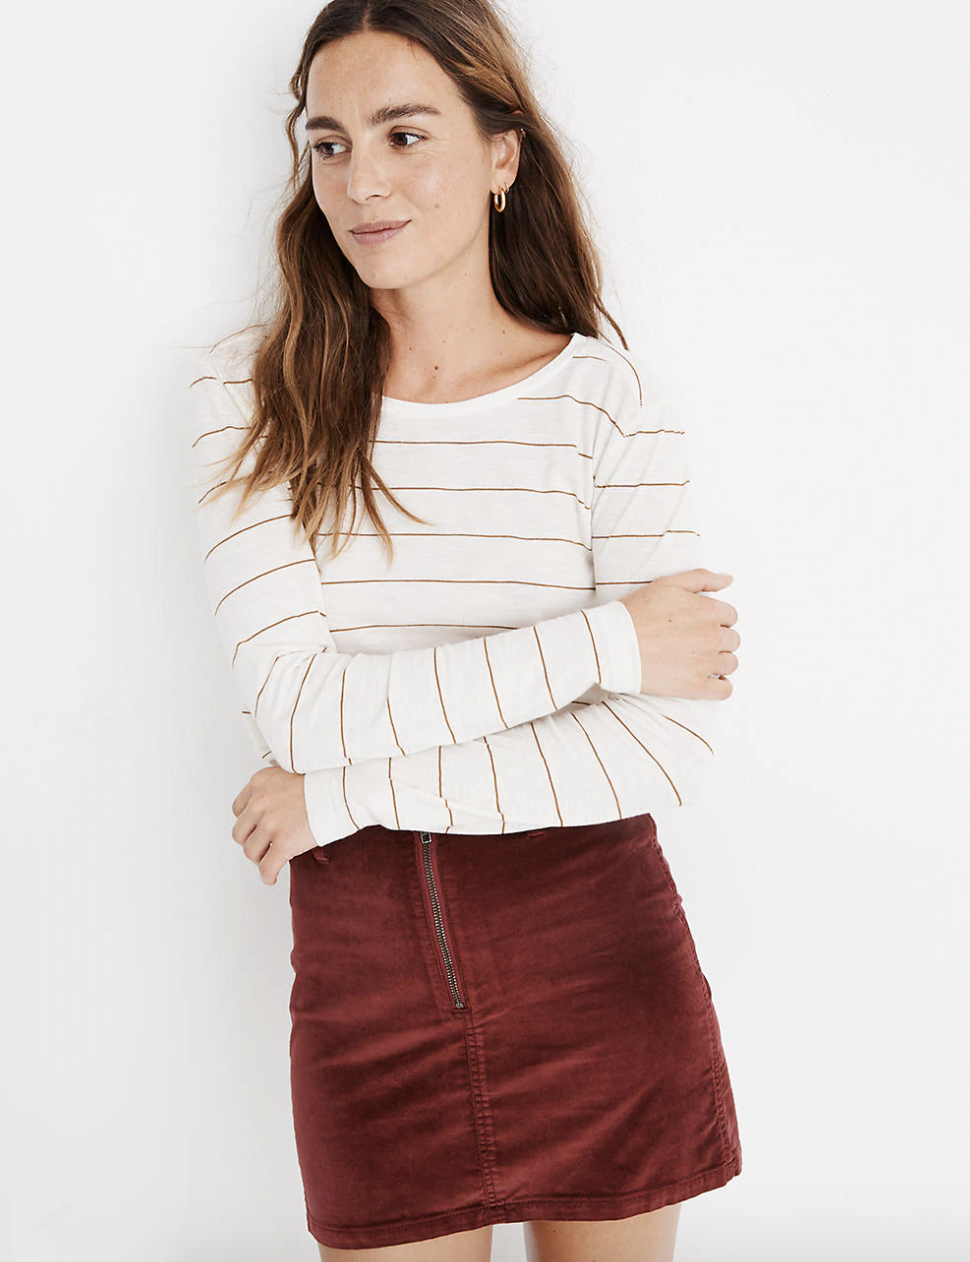 a model wearing the white long sleeve top that has thin burnt orange horizontal stripes throughout with a velvet burnt orange skirt